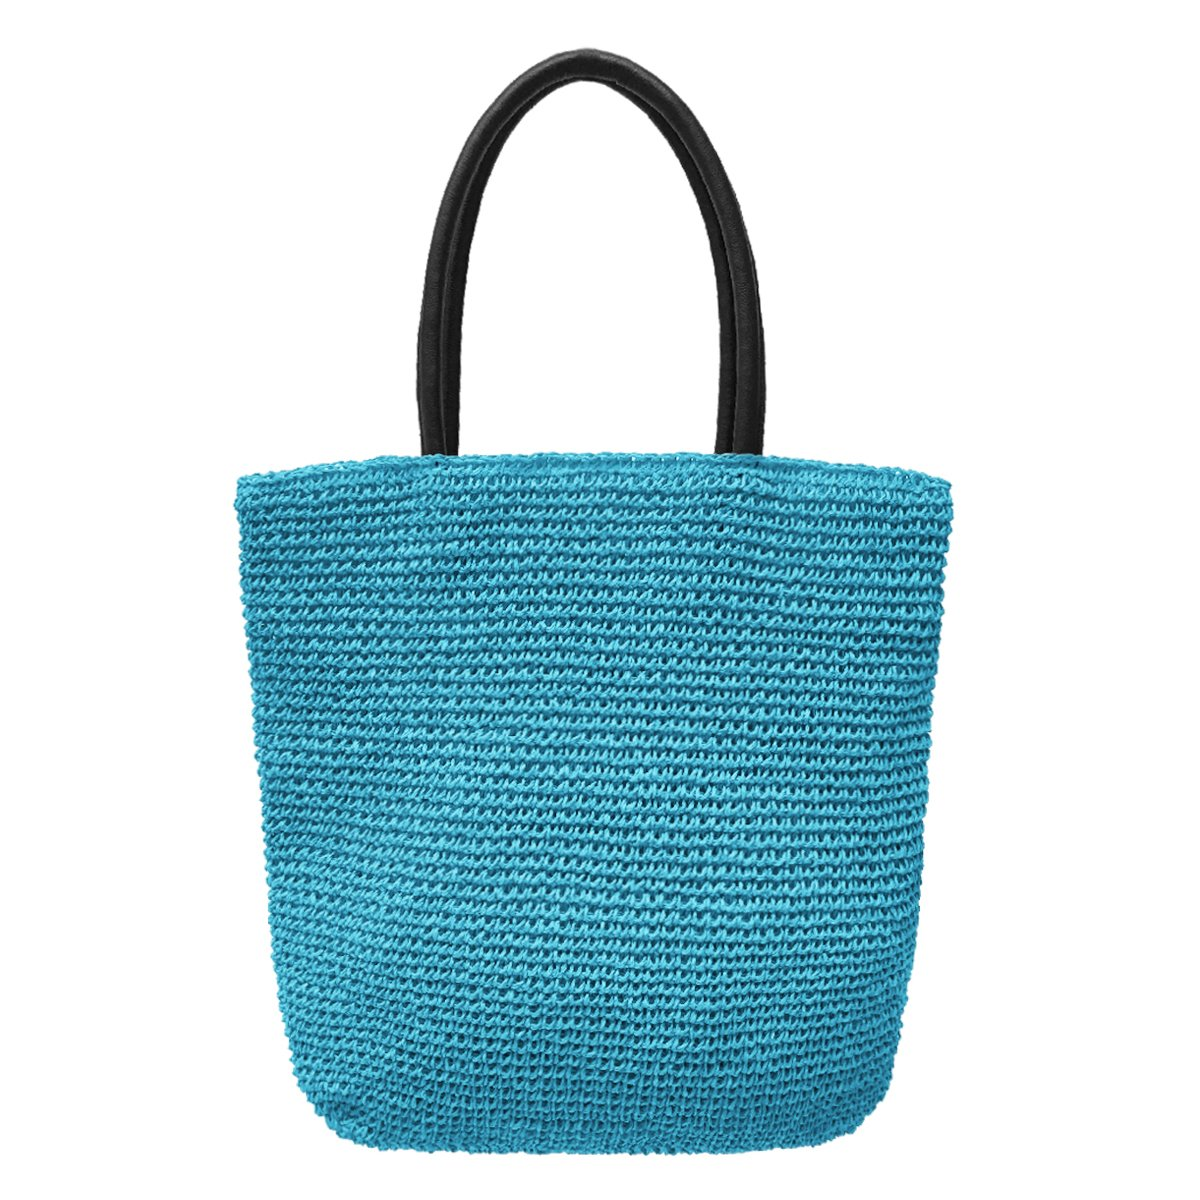 Crochet Tote Bag by Bambou, Fashion Purse Women, Beach Bag, Ladies Shopping Bag, 100% Recycled Material (Azure)